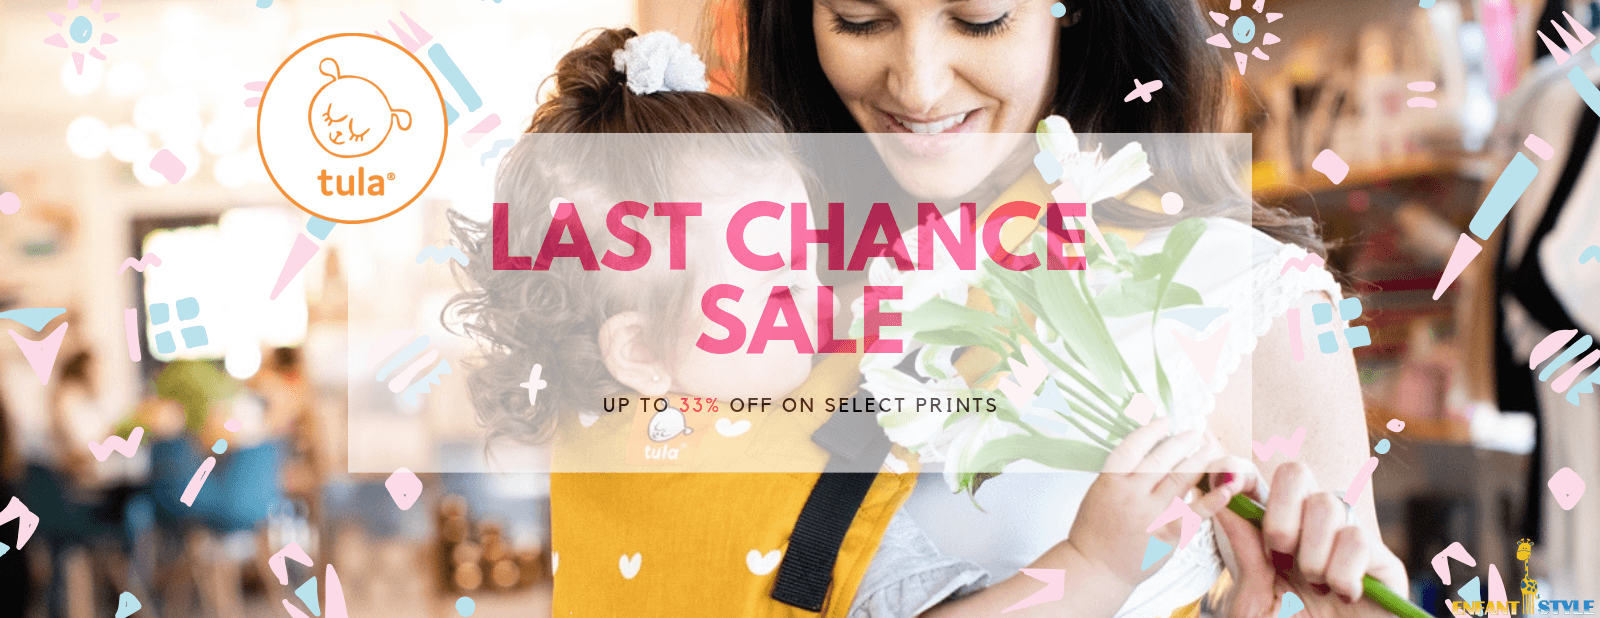 tula baby carrier sales at Enfant Style